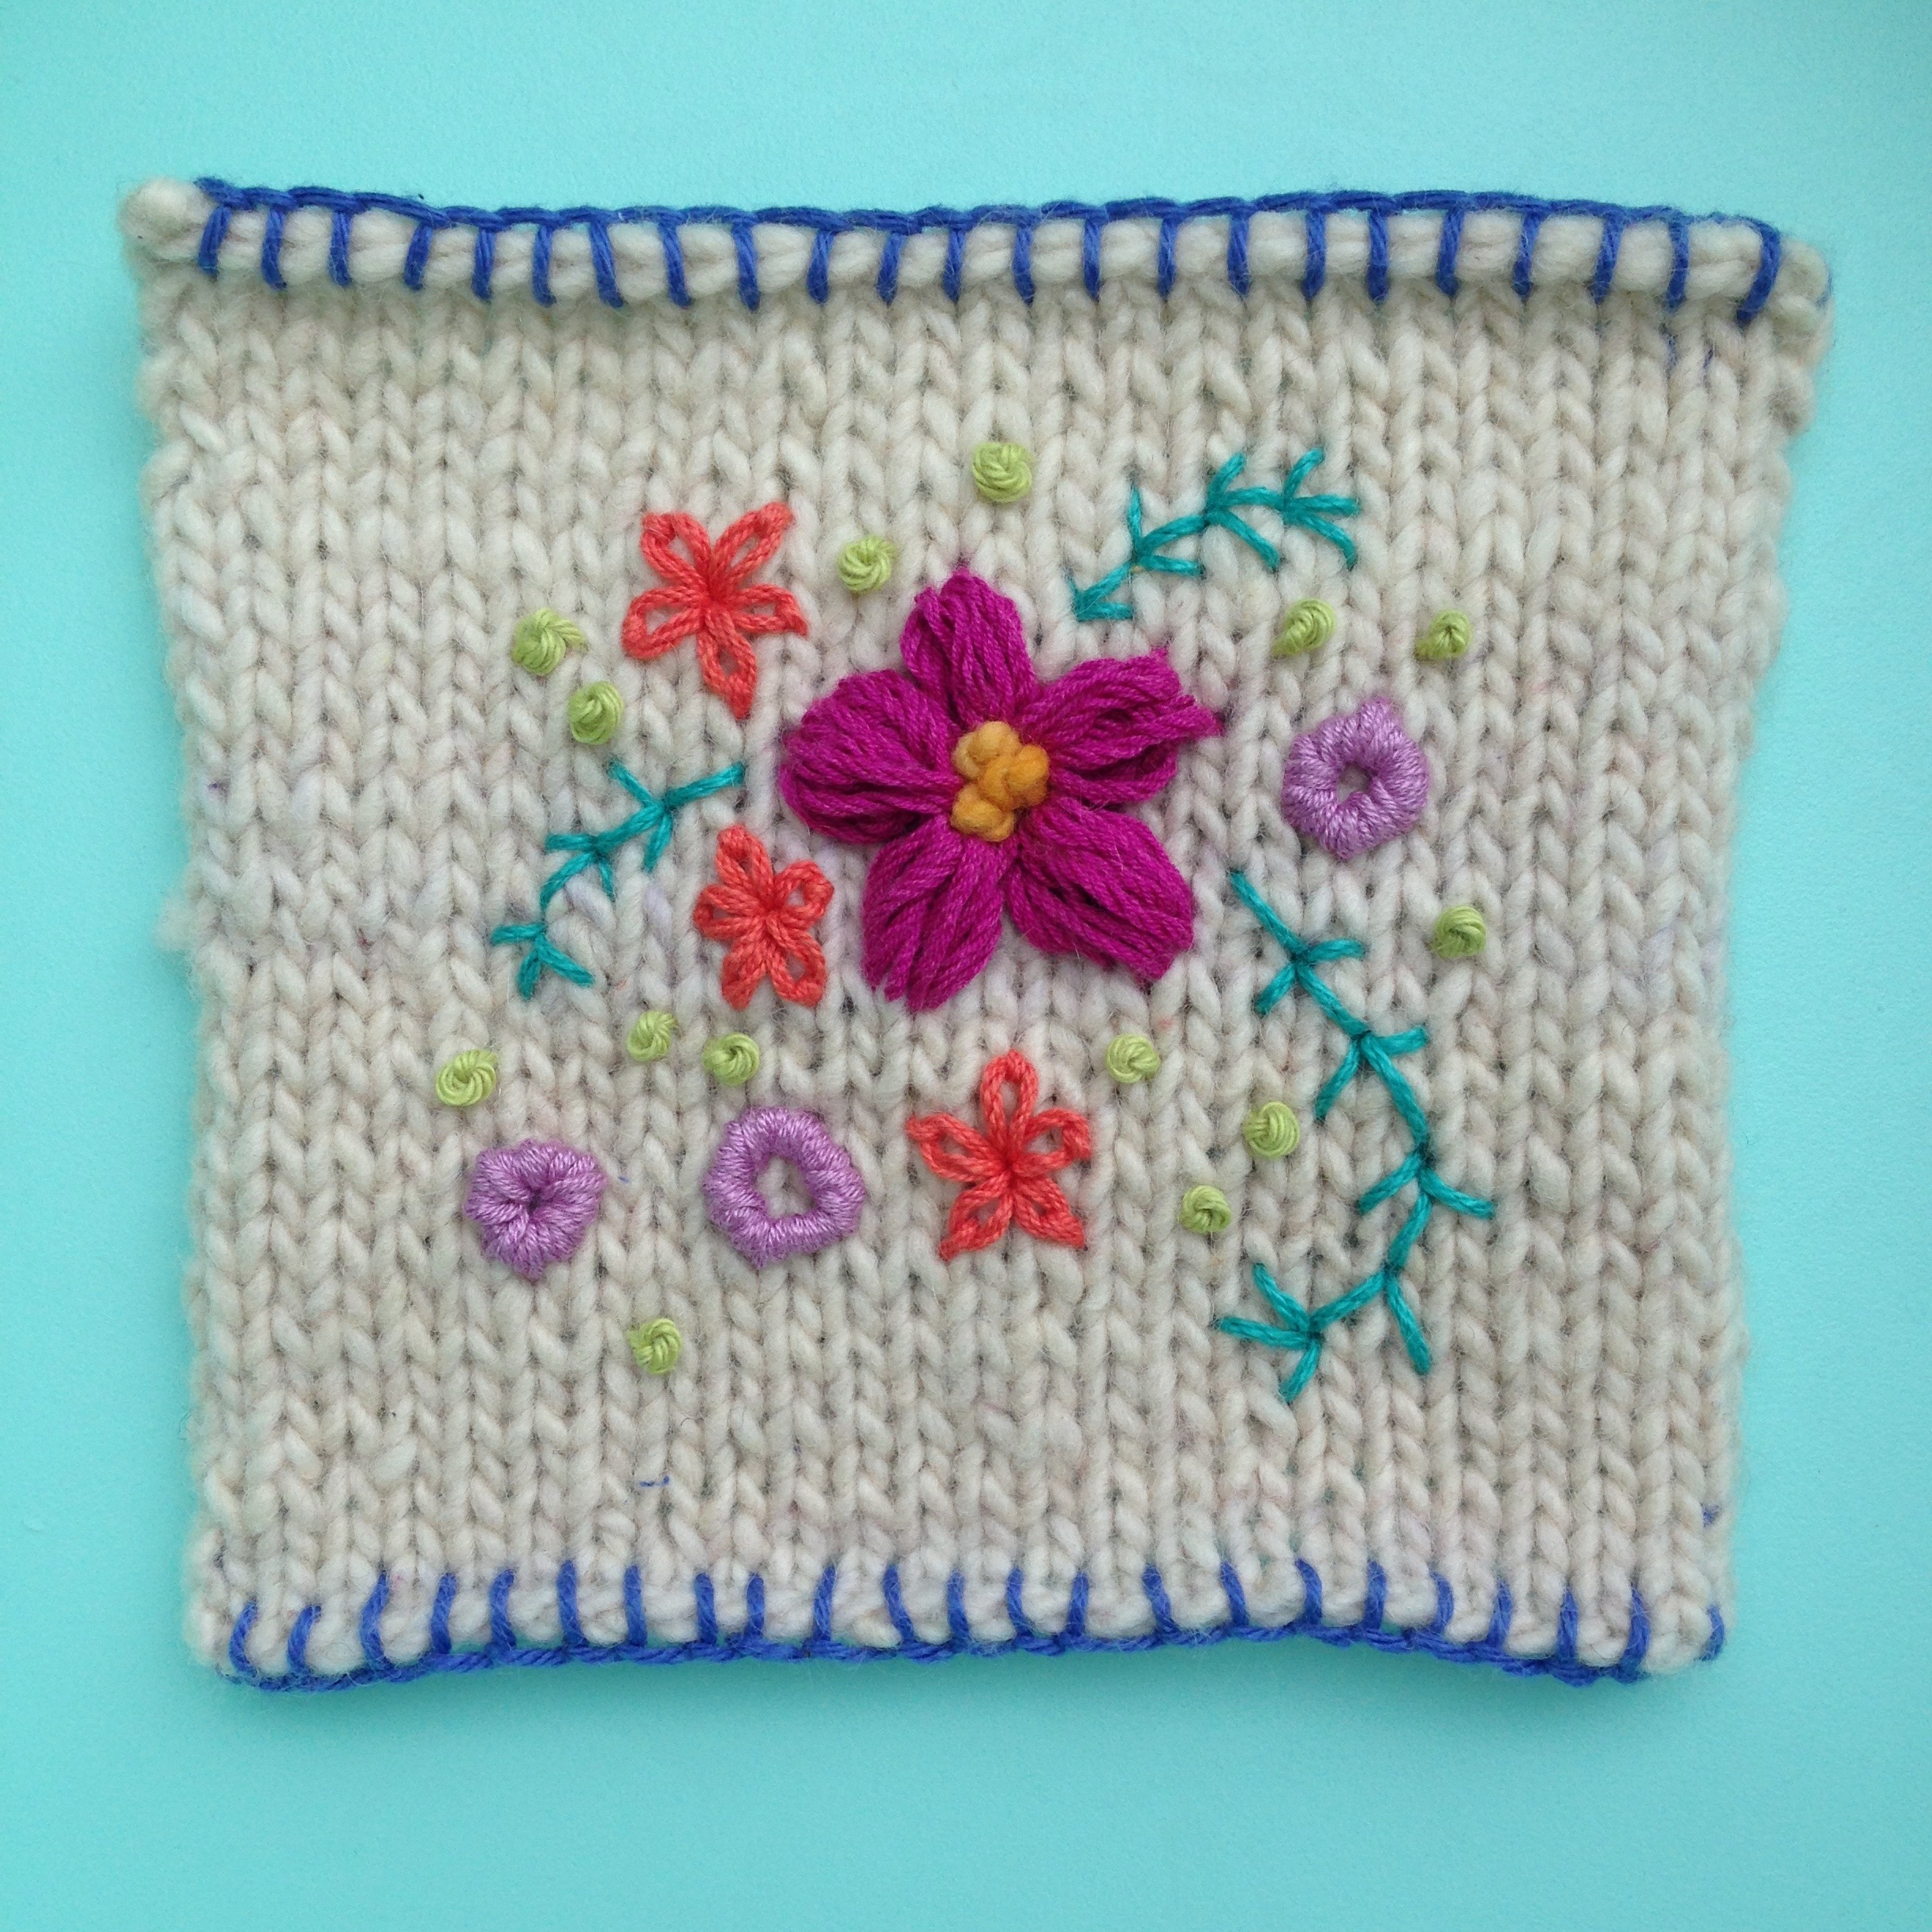 Embroidery for Knits and Crochet